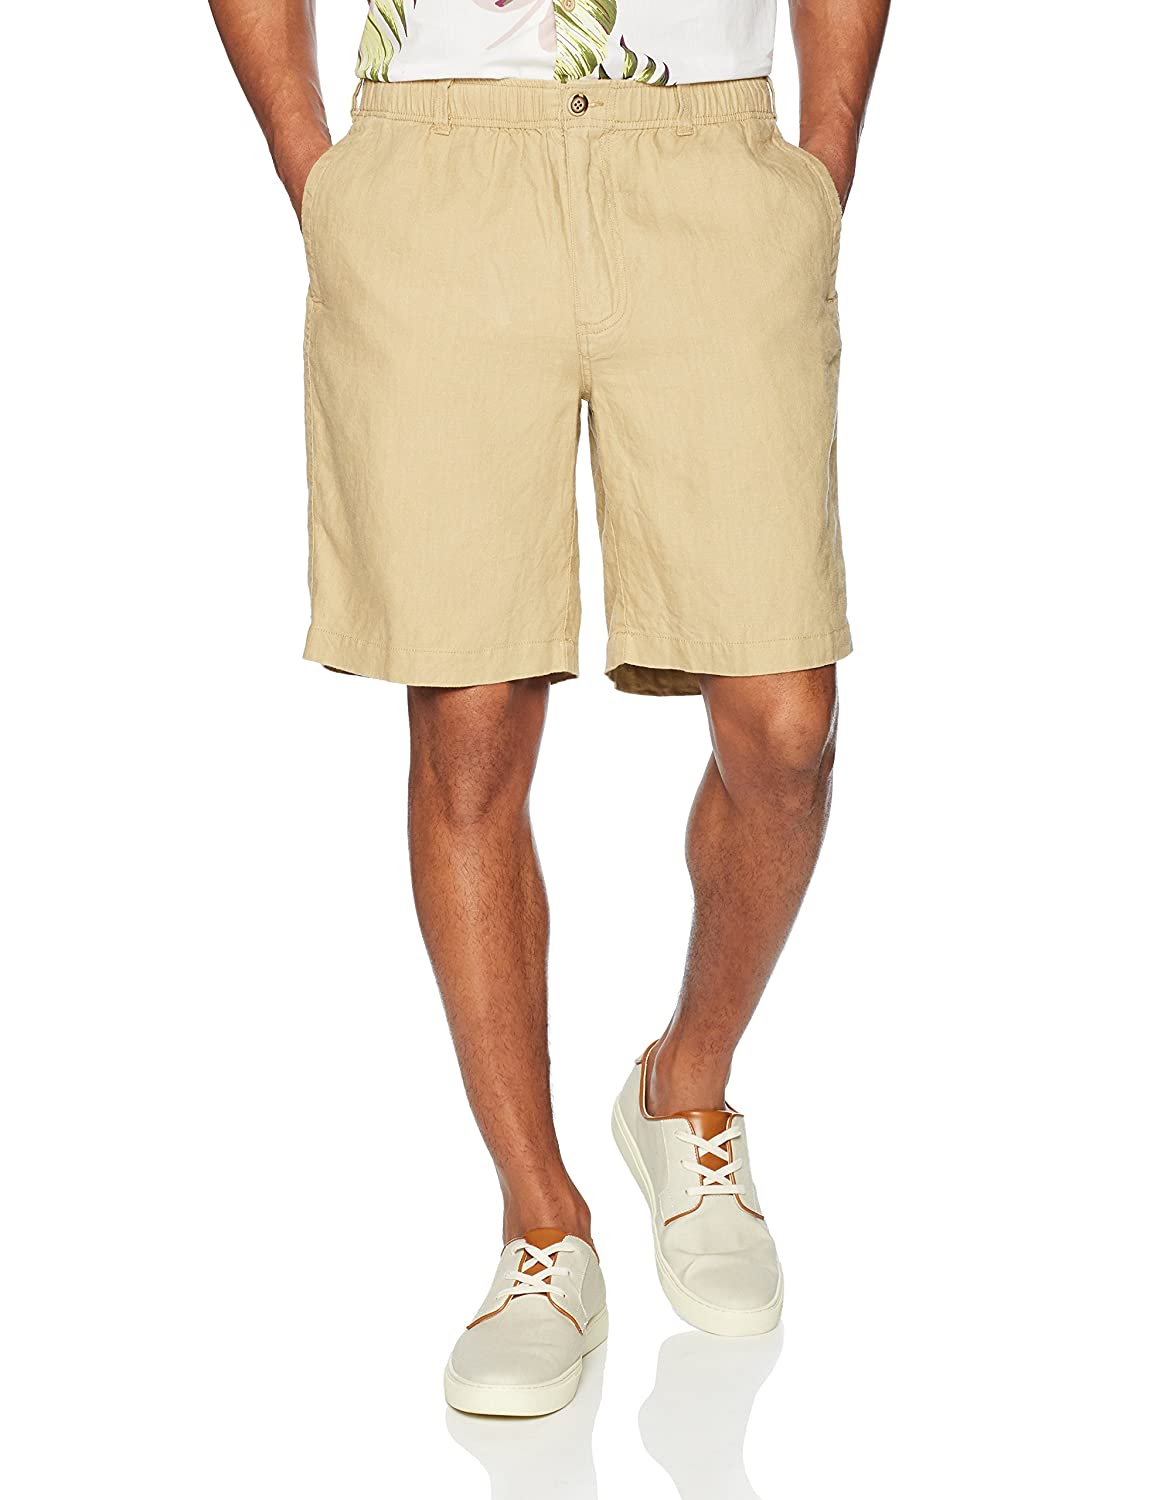 28 Palms Mens Standard Relaxed-fit 9 Inseam Linen Short with Drawstring MPM60006